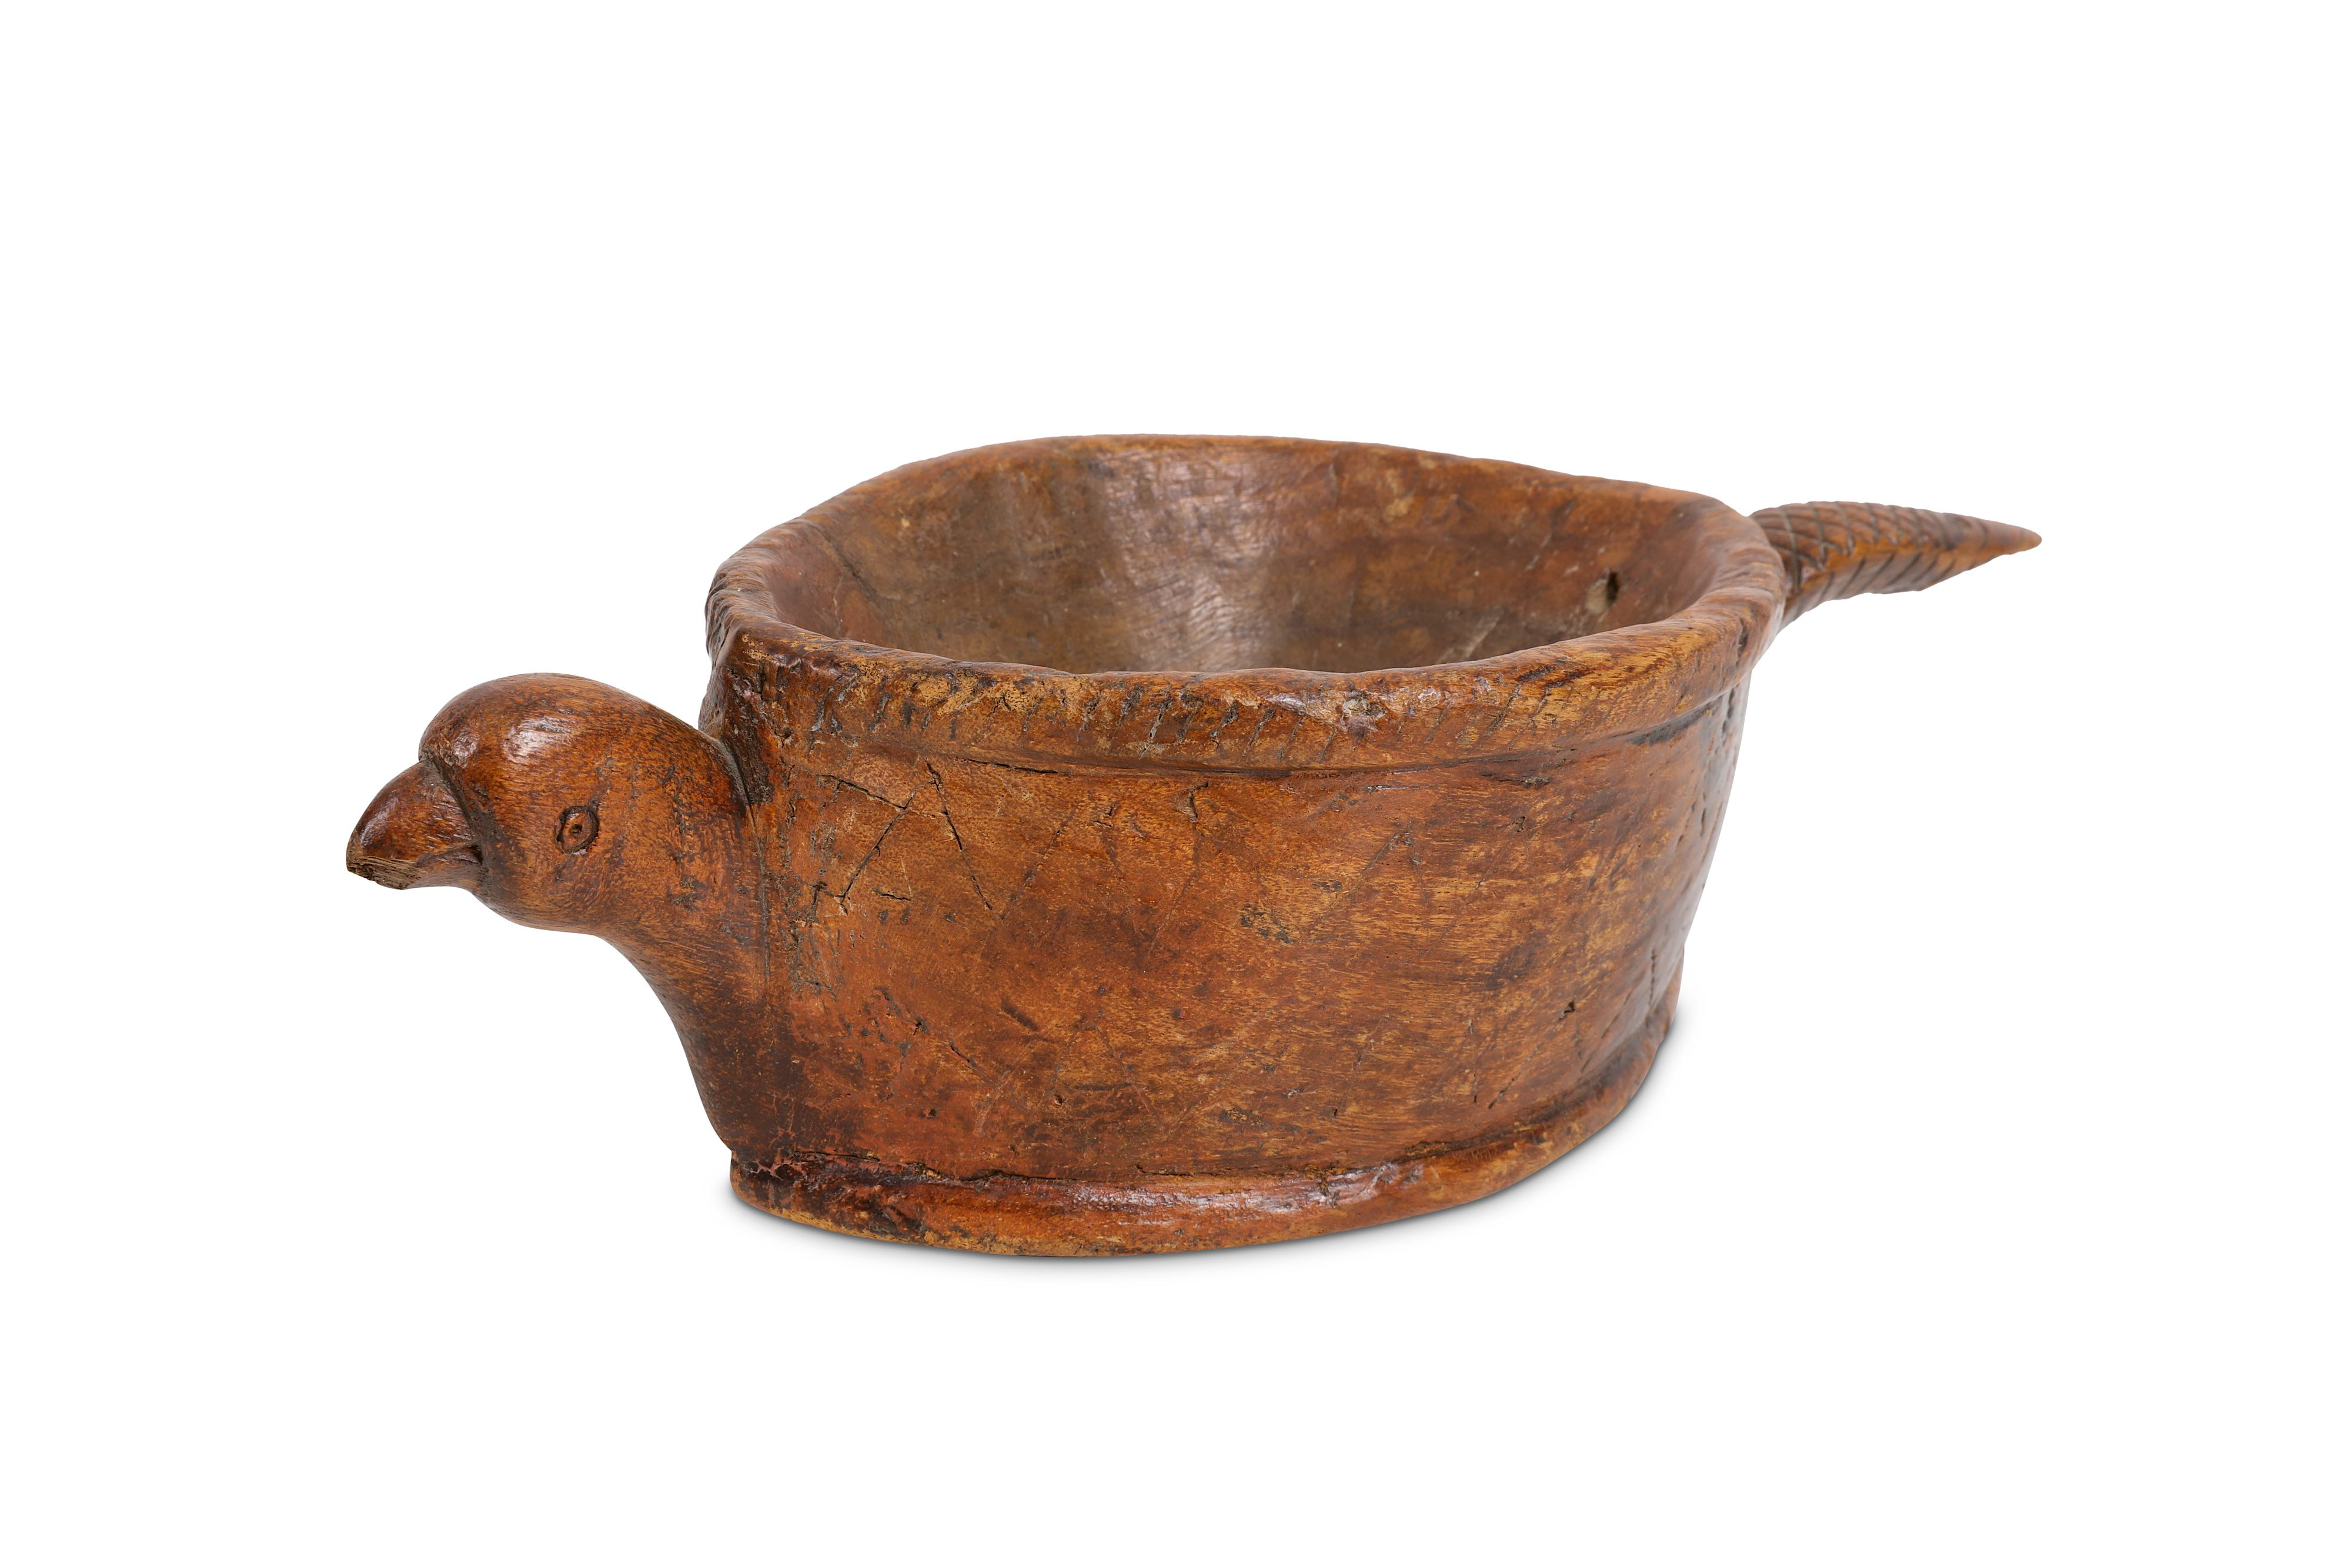 TREEN: A 19TH CENTURY CONTINENTAL (POSSIBLY SCANDINAVIAN) DRINKING VESSEL IN THE FORM OF AN ARMADILL